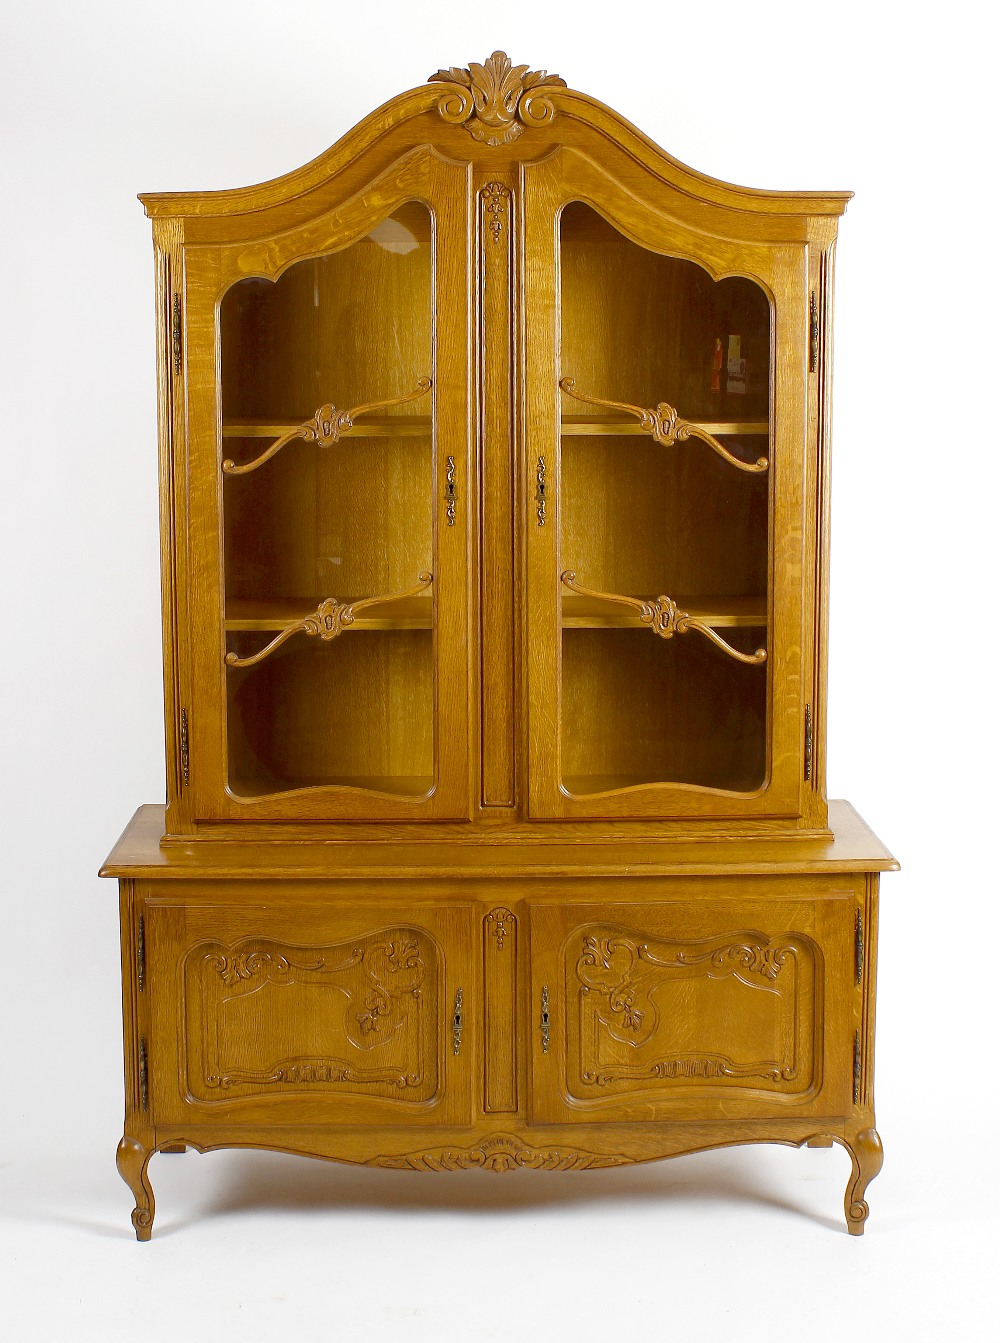 Lot 840 - A reproduction oak display cabinet. The upper section with carved scrolled pediment above twin